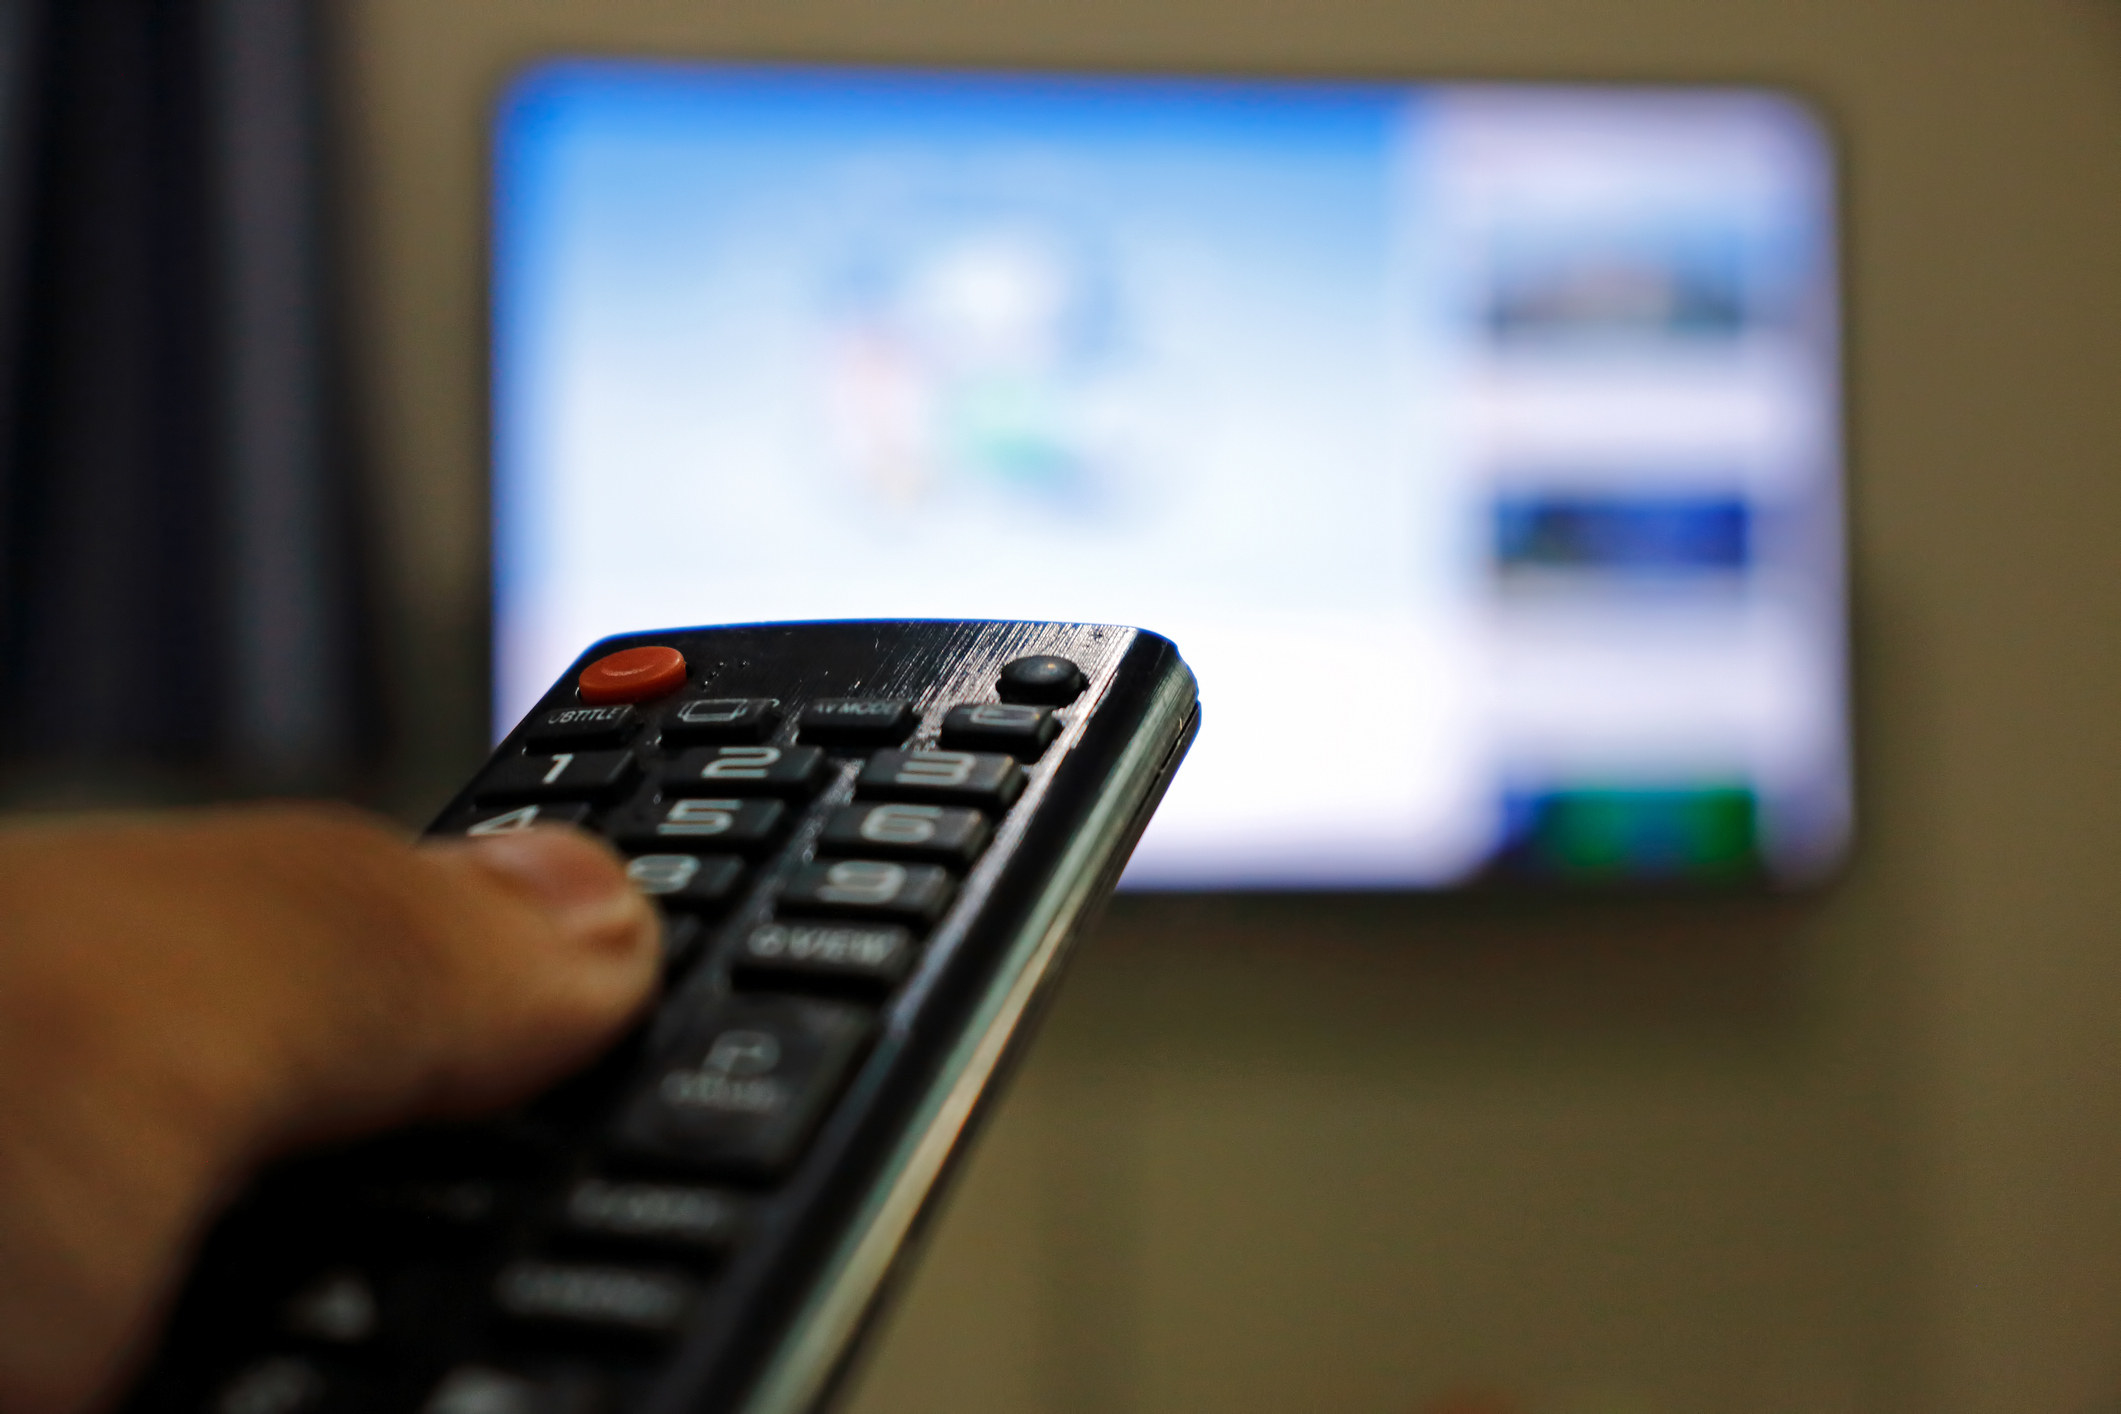 Close-up of a remote with someone's thumb on it being pointed towards a blurry TV screen mounted on the wall